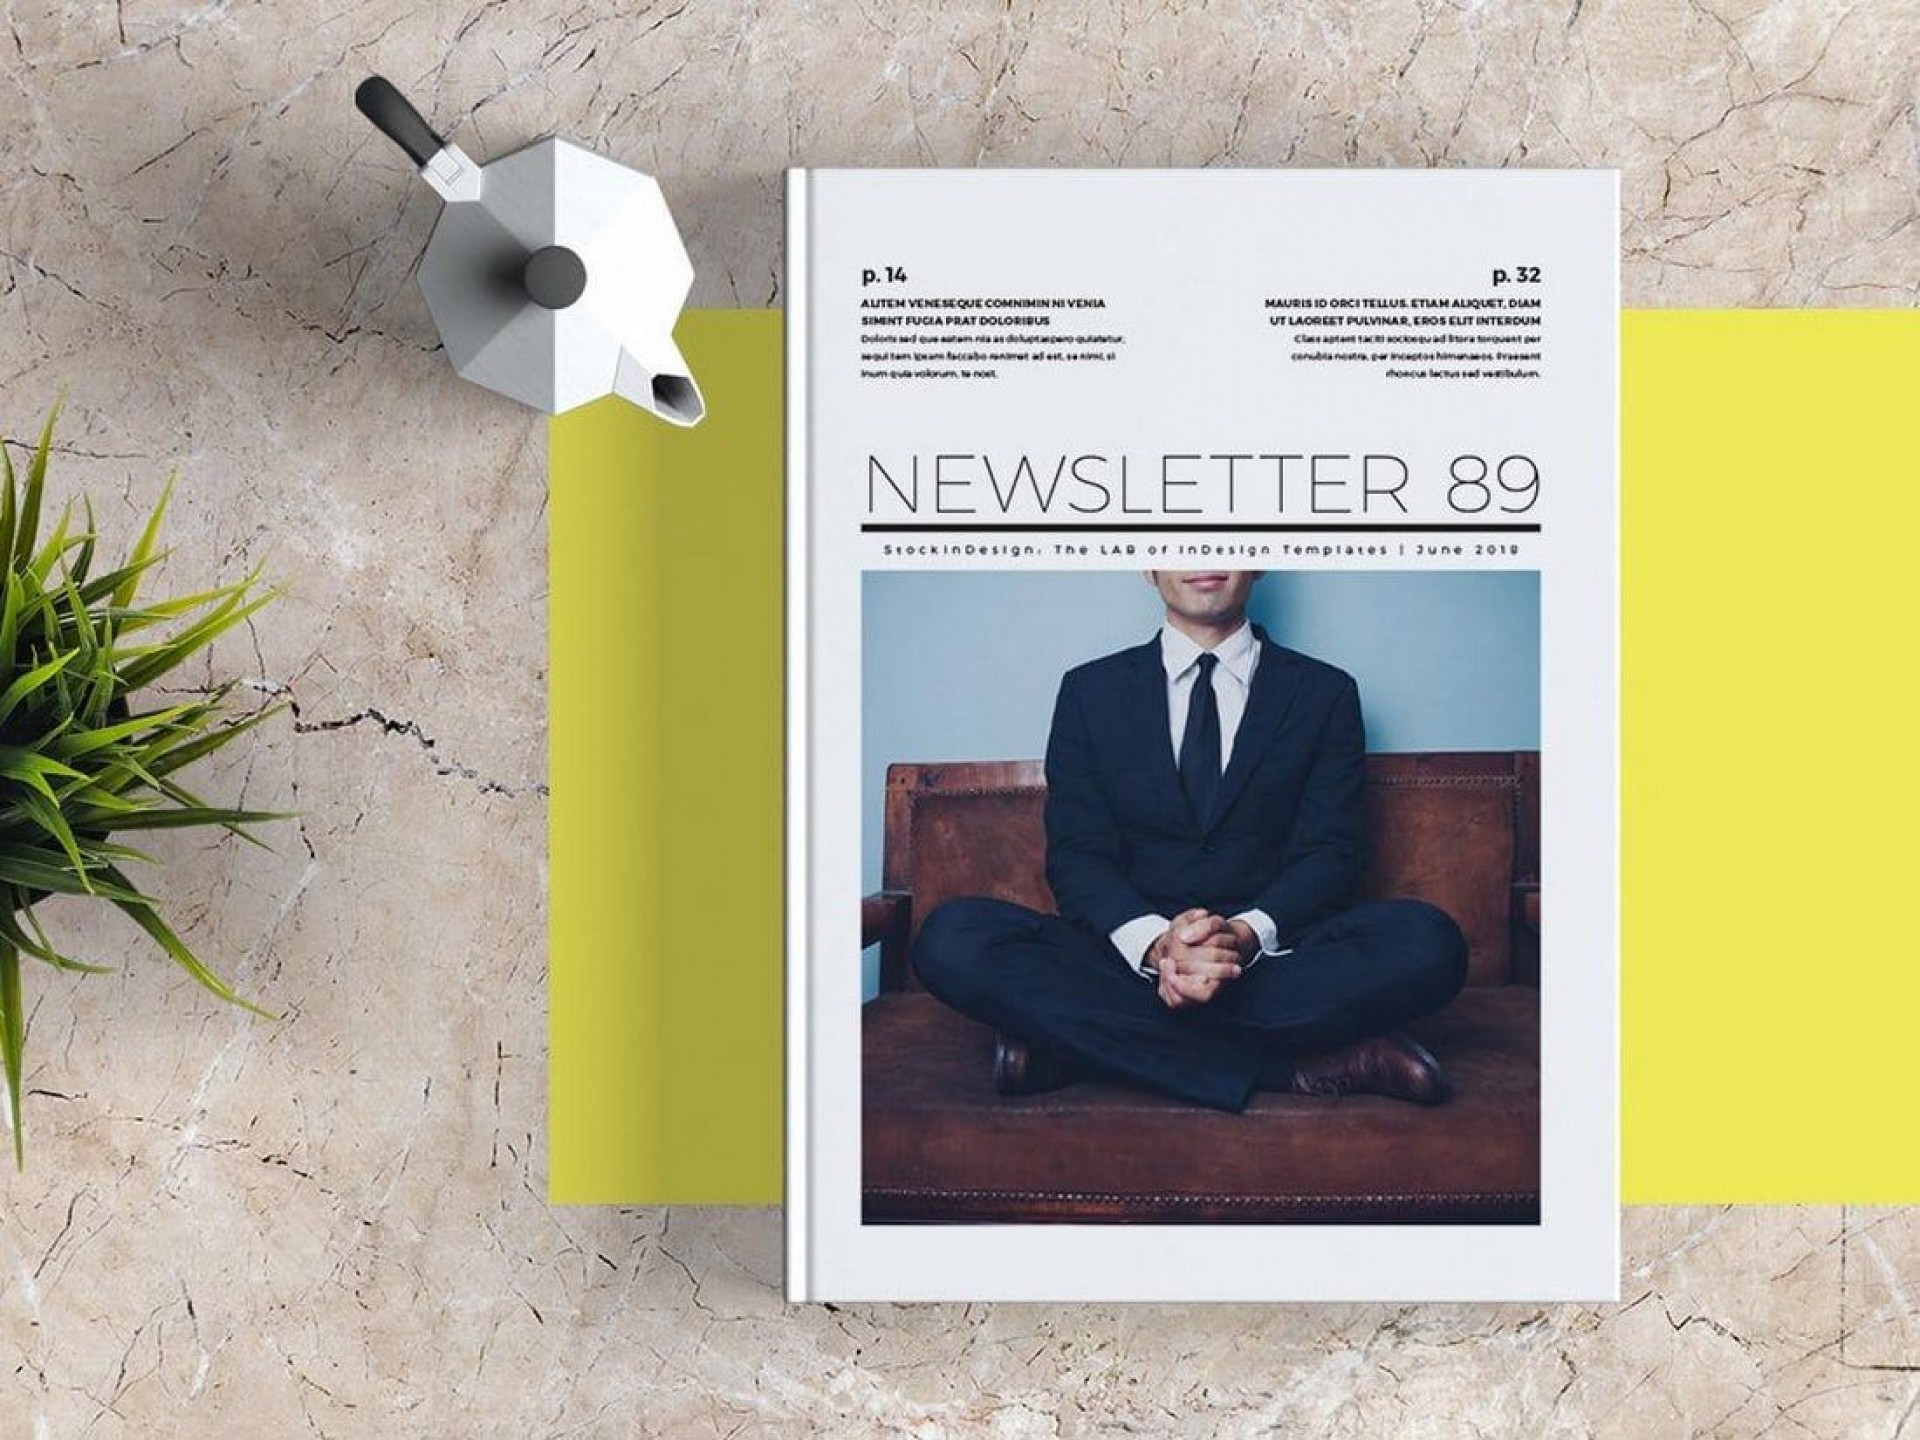 001 Unbelievable Indesign Newsletter Template Free Inspiration  Cs6 Email Adobe Download1920